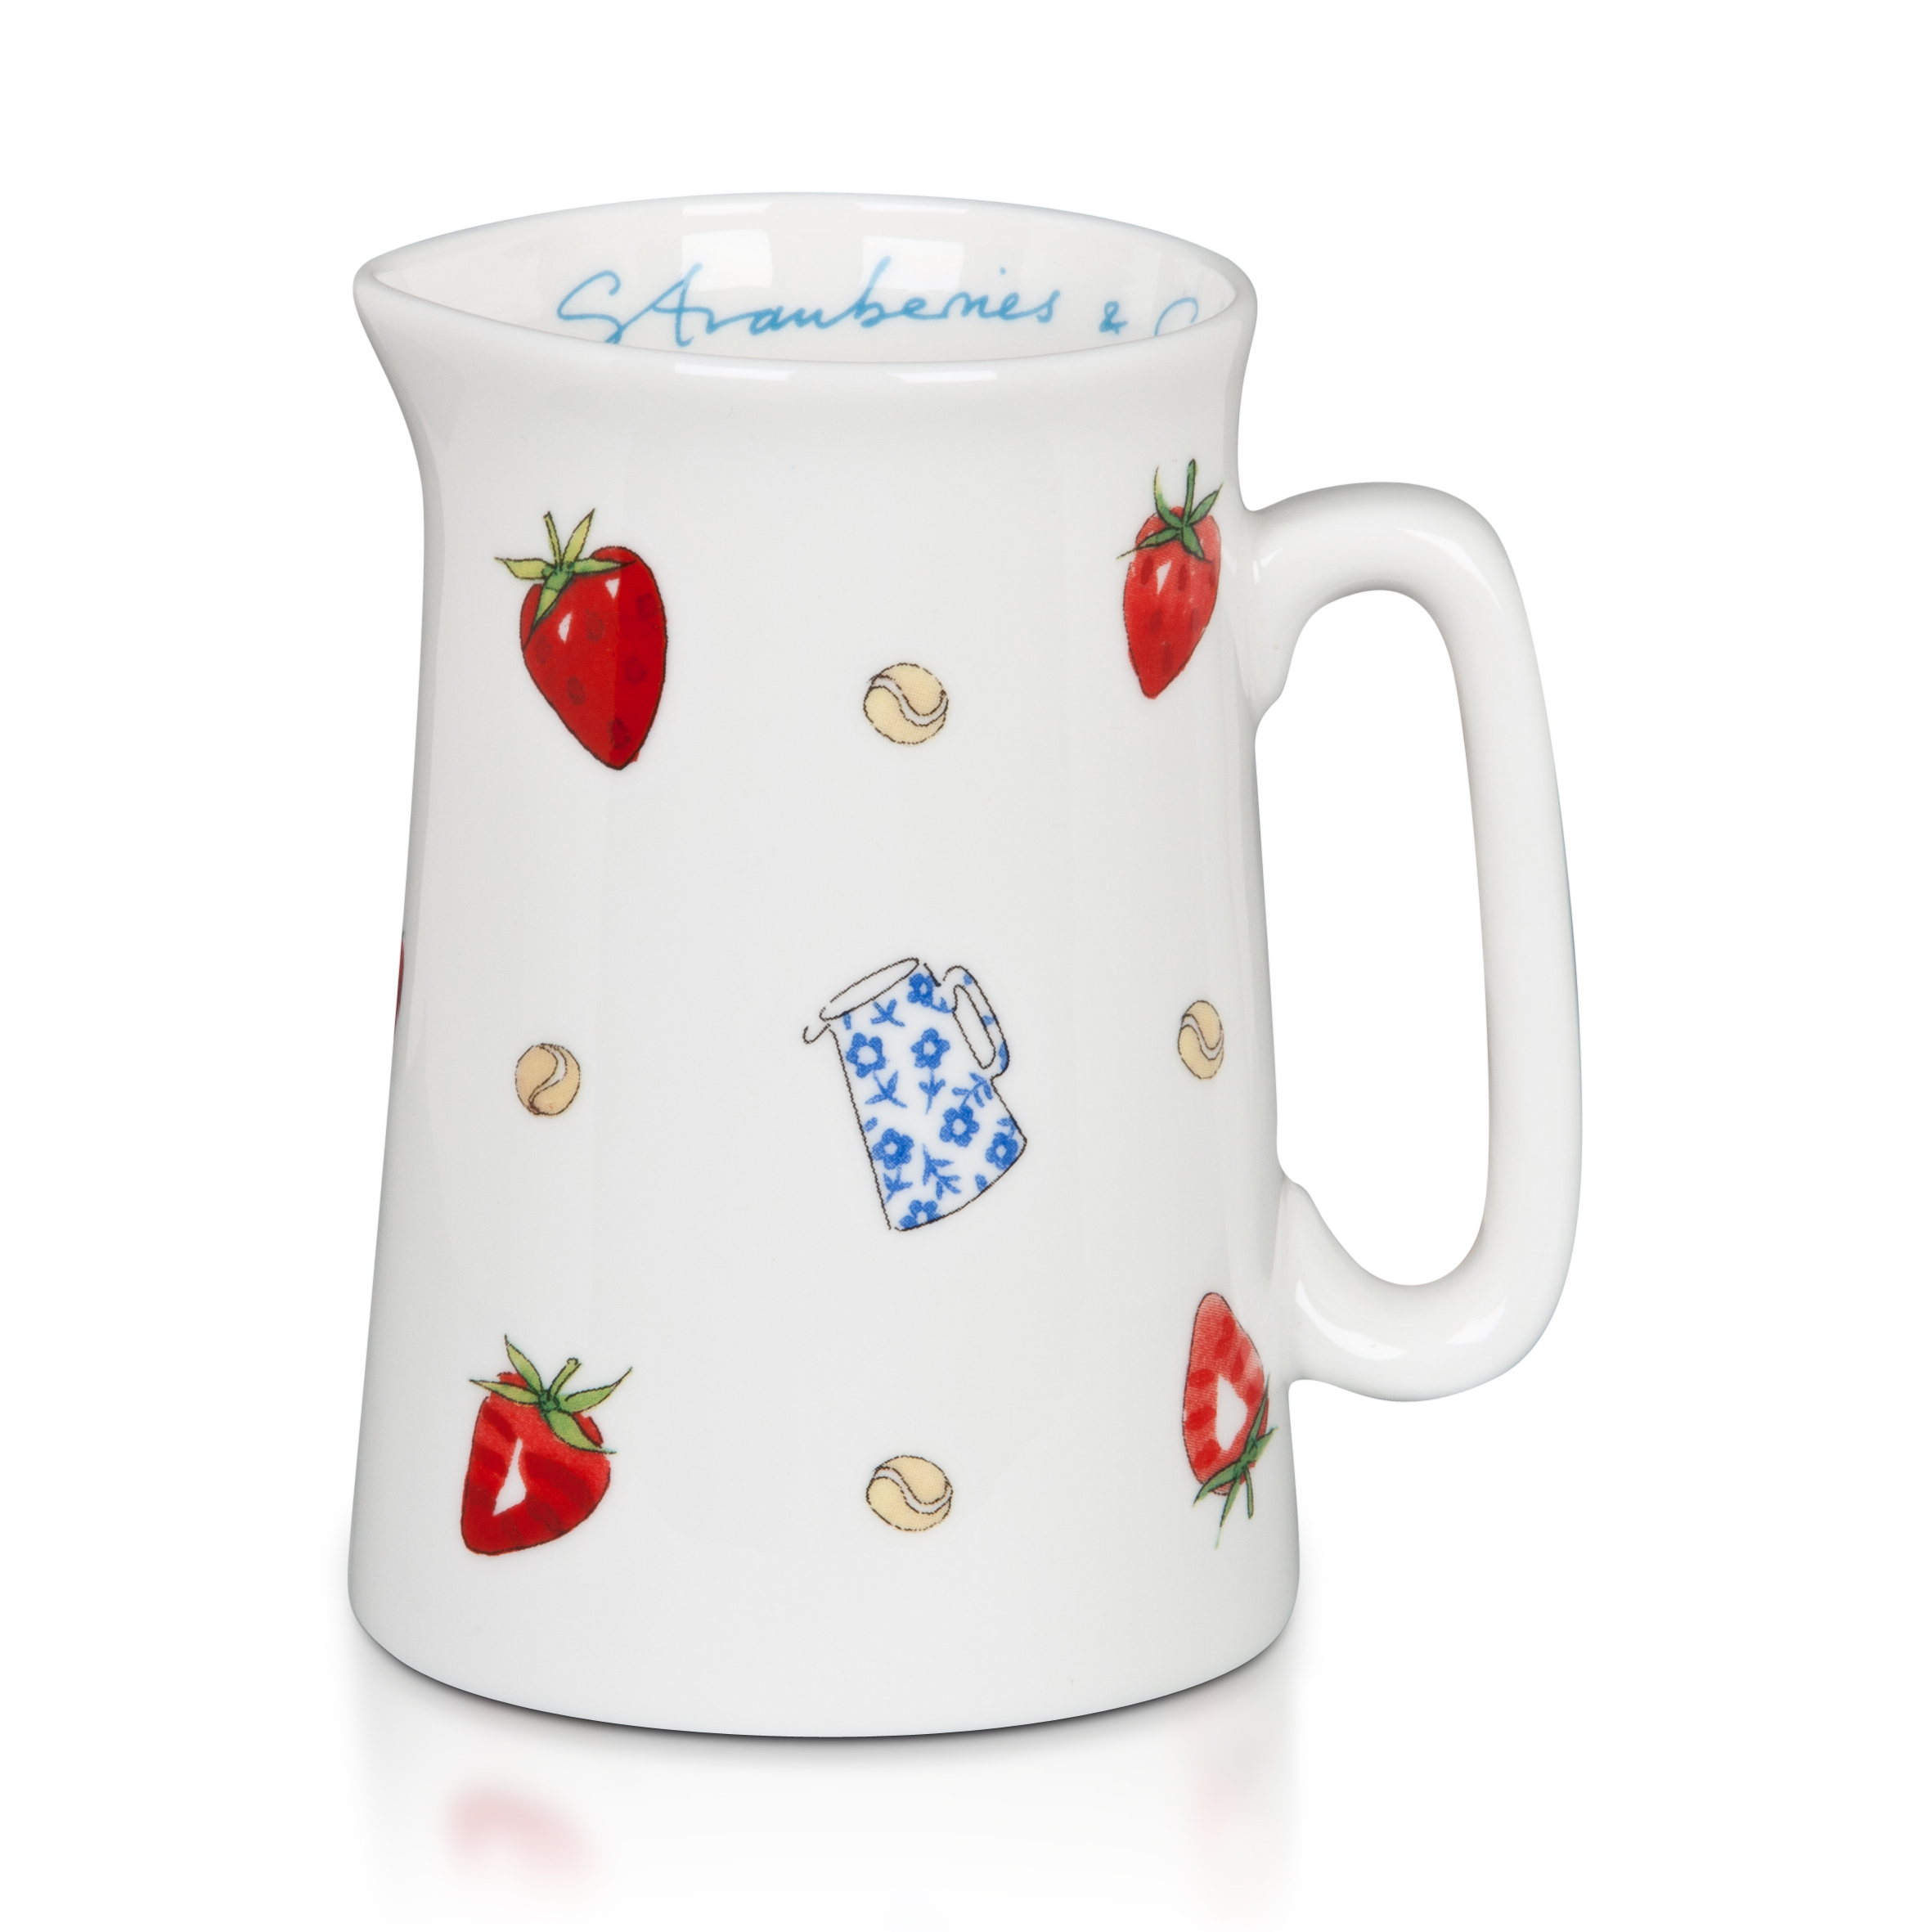 Wimbledon Strawberries and Cream Jug - White